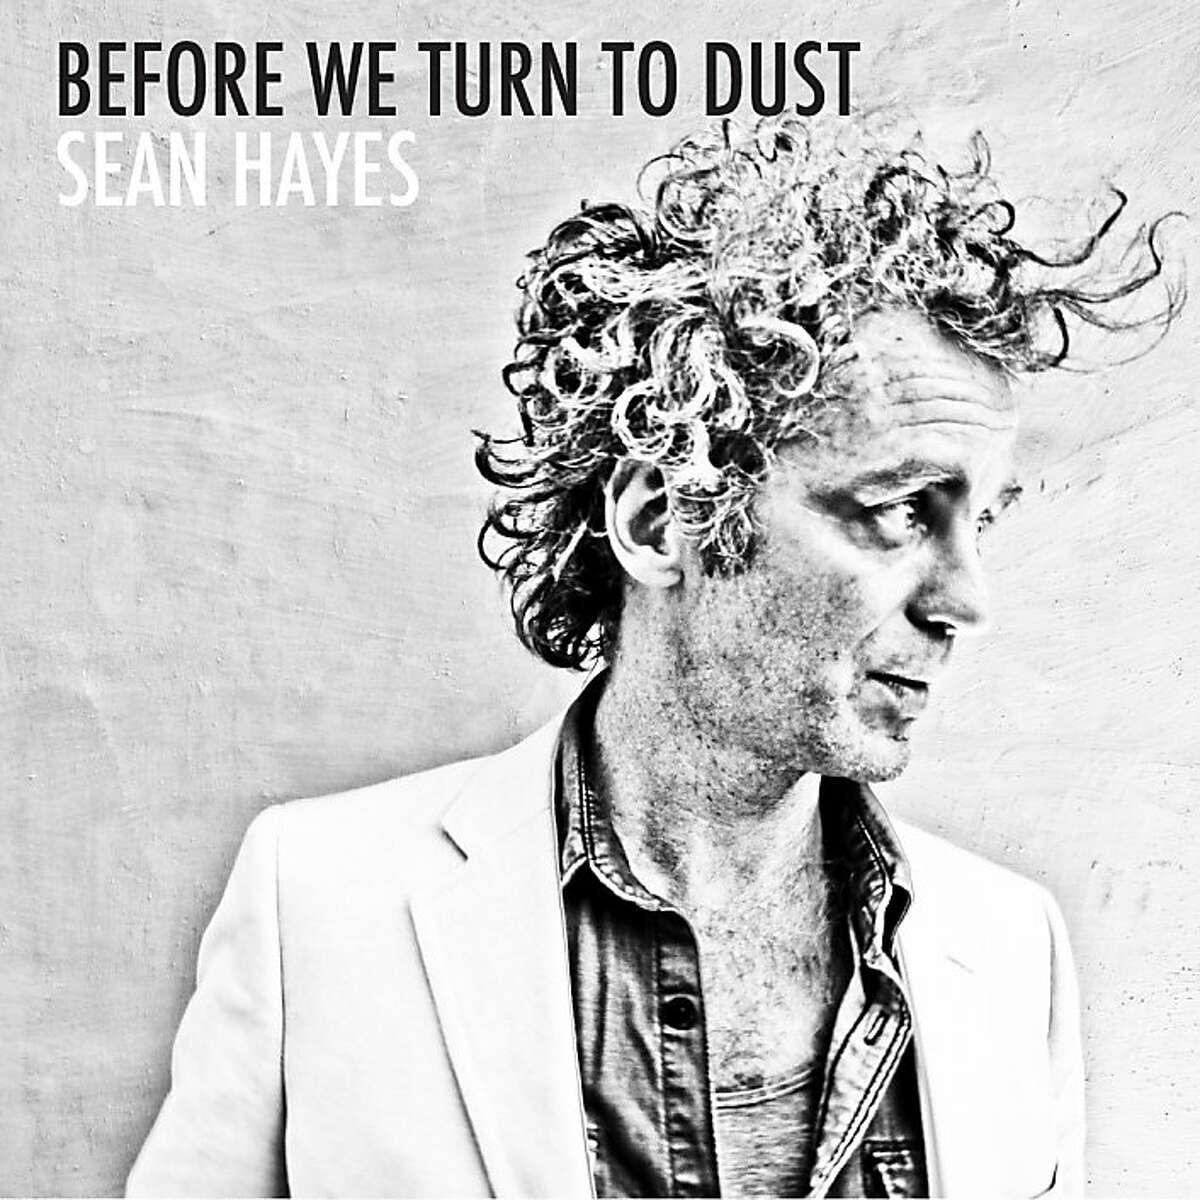 """CD cover: Sean Hayes' """"Before We Turn to Dust."""""""